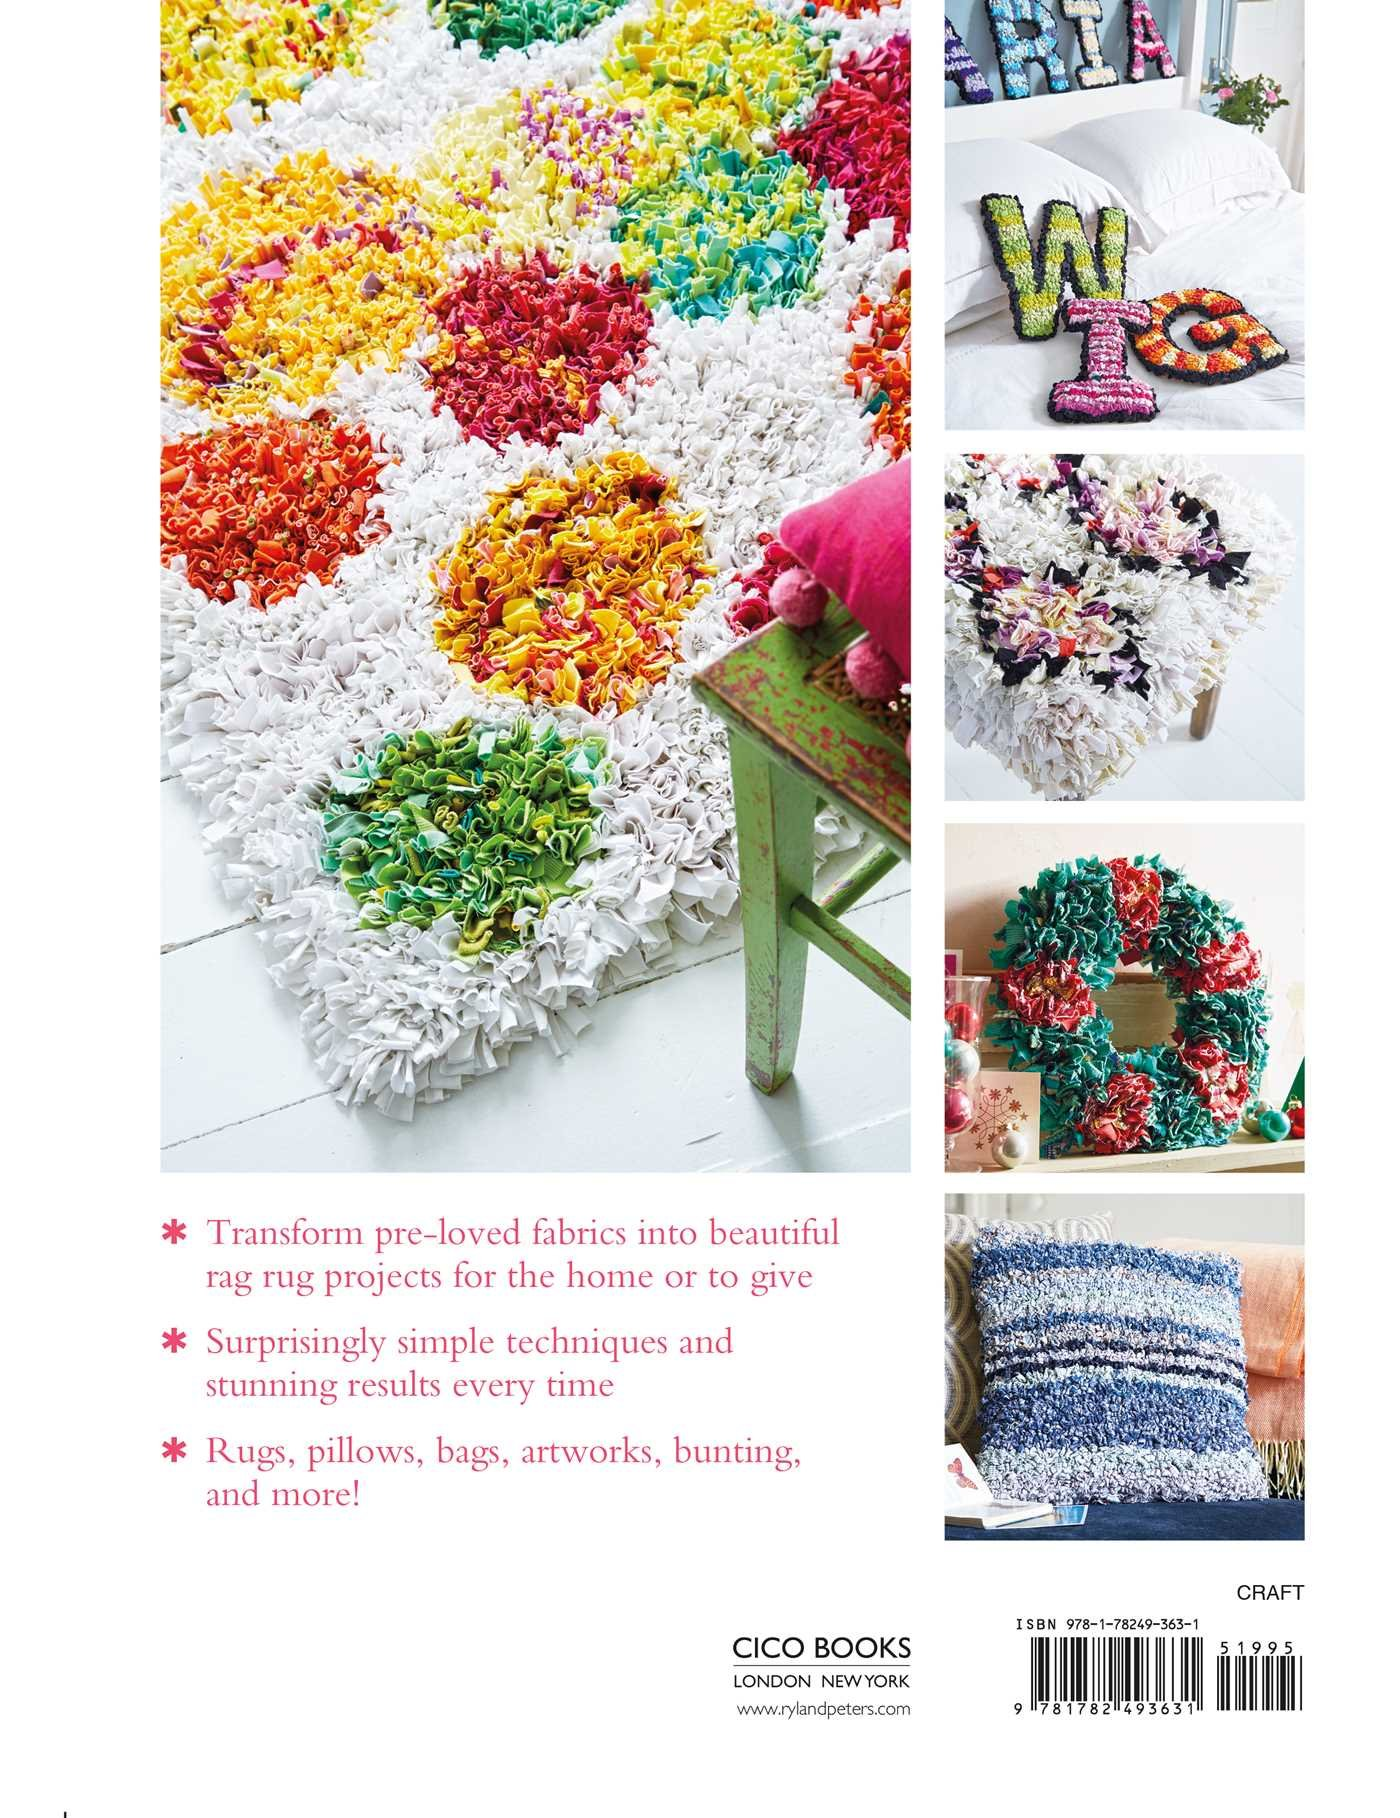 rag rugs pillows and more over 30 ways to upcycle fabric for the home elspeth jackson amazoncom books